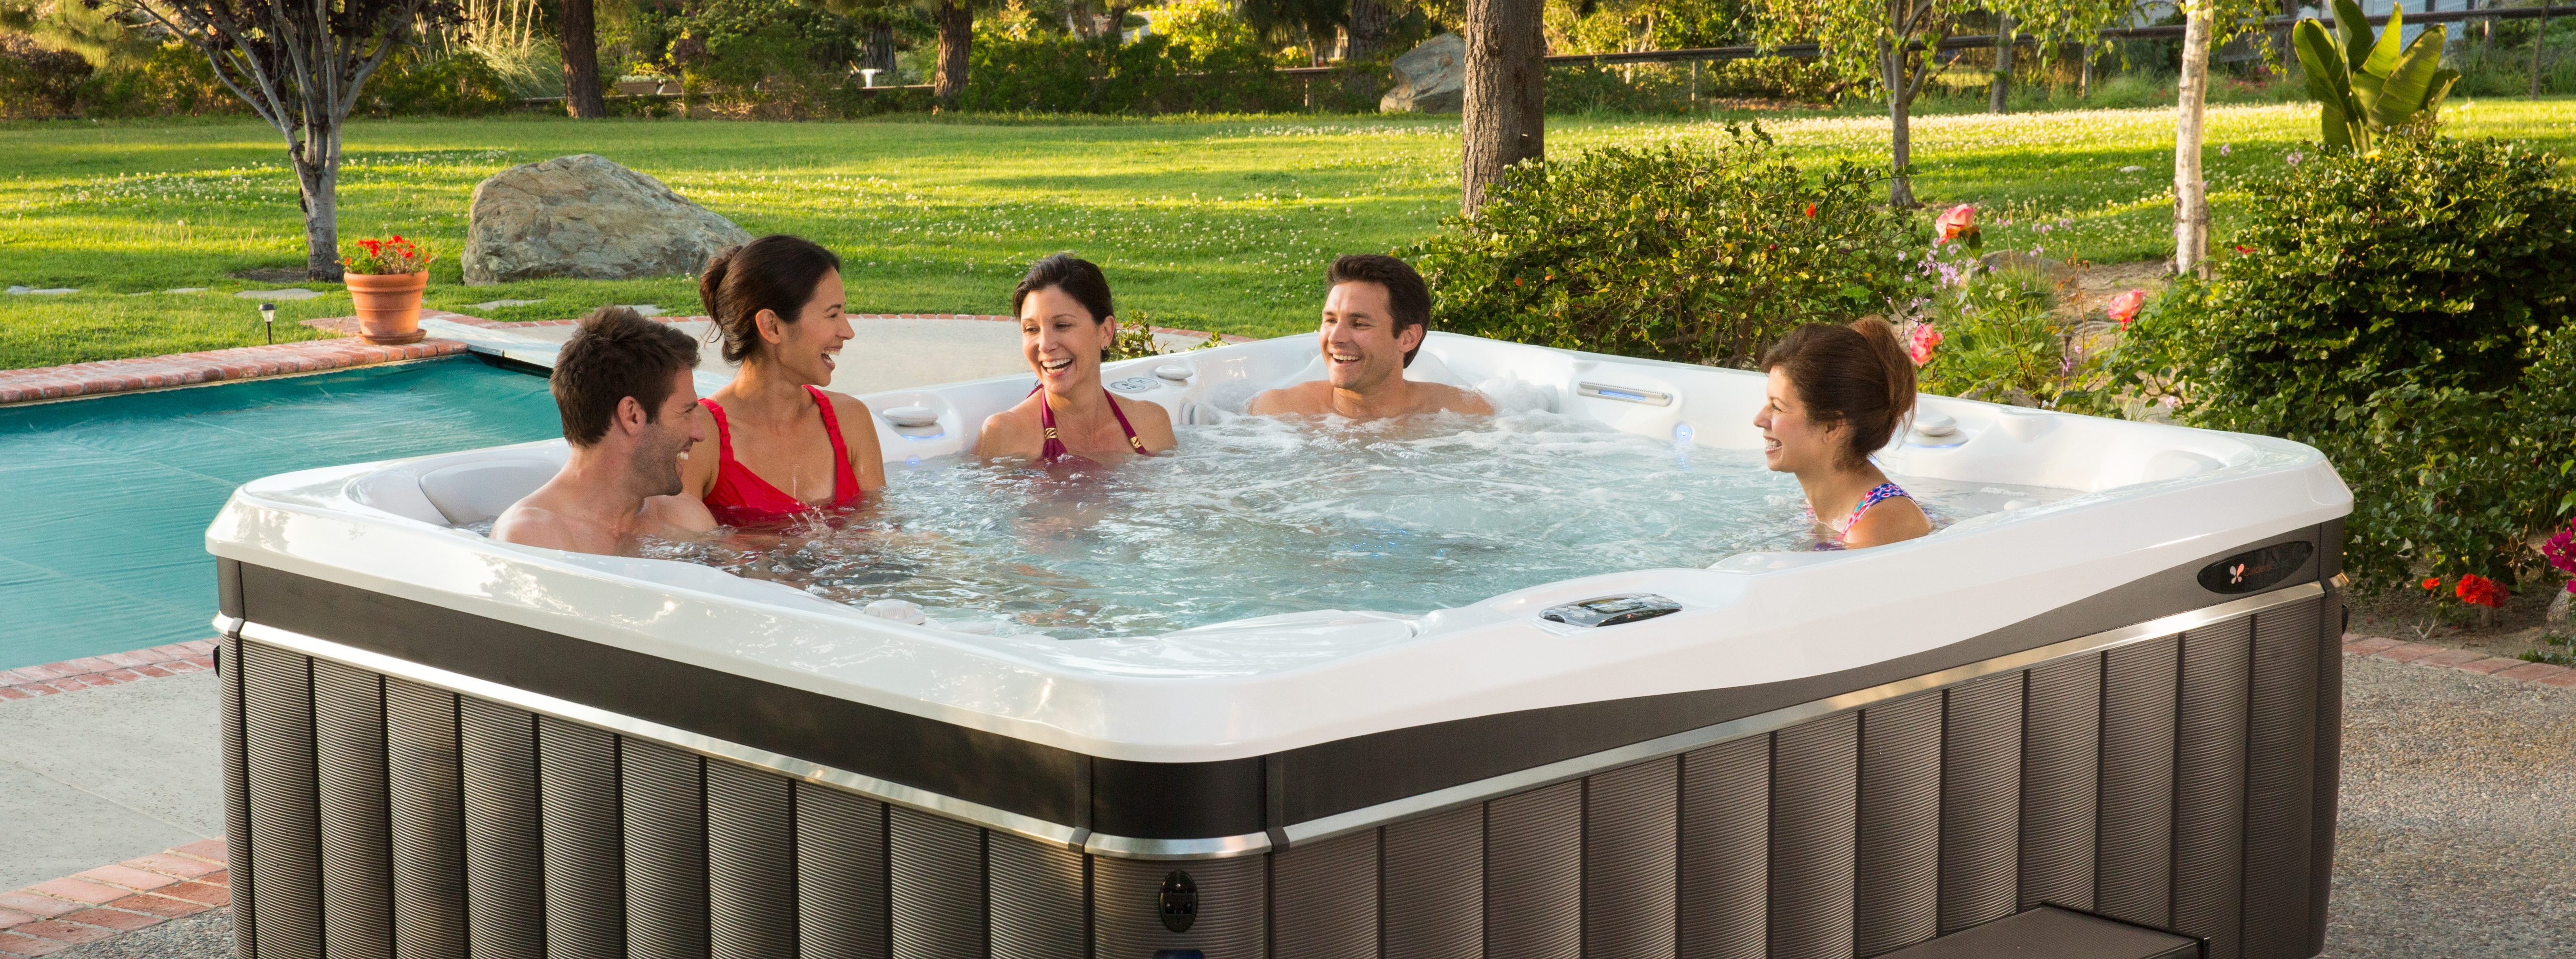 Friends Love to Visit Your Hot Tub